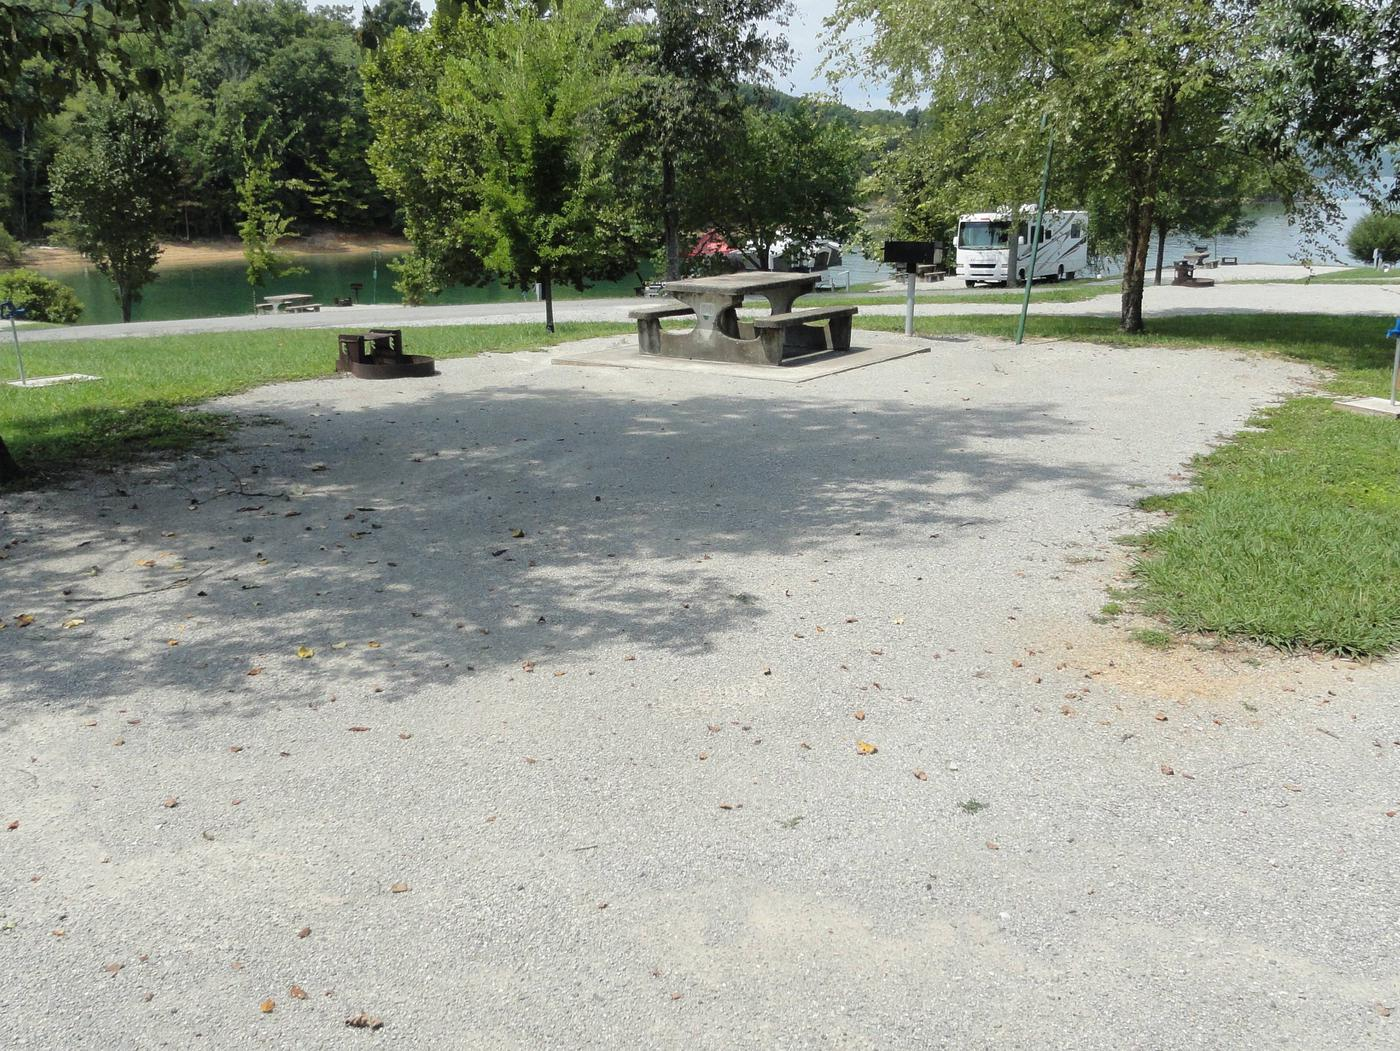 LILLYDALE CAMPGROUND SITE # 86